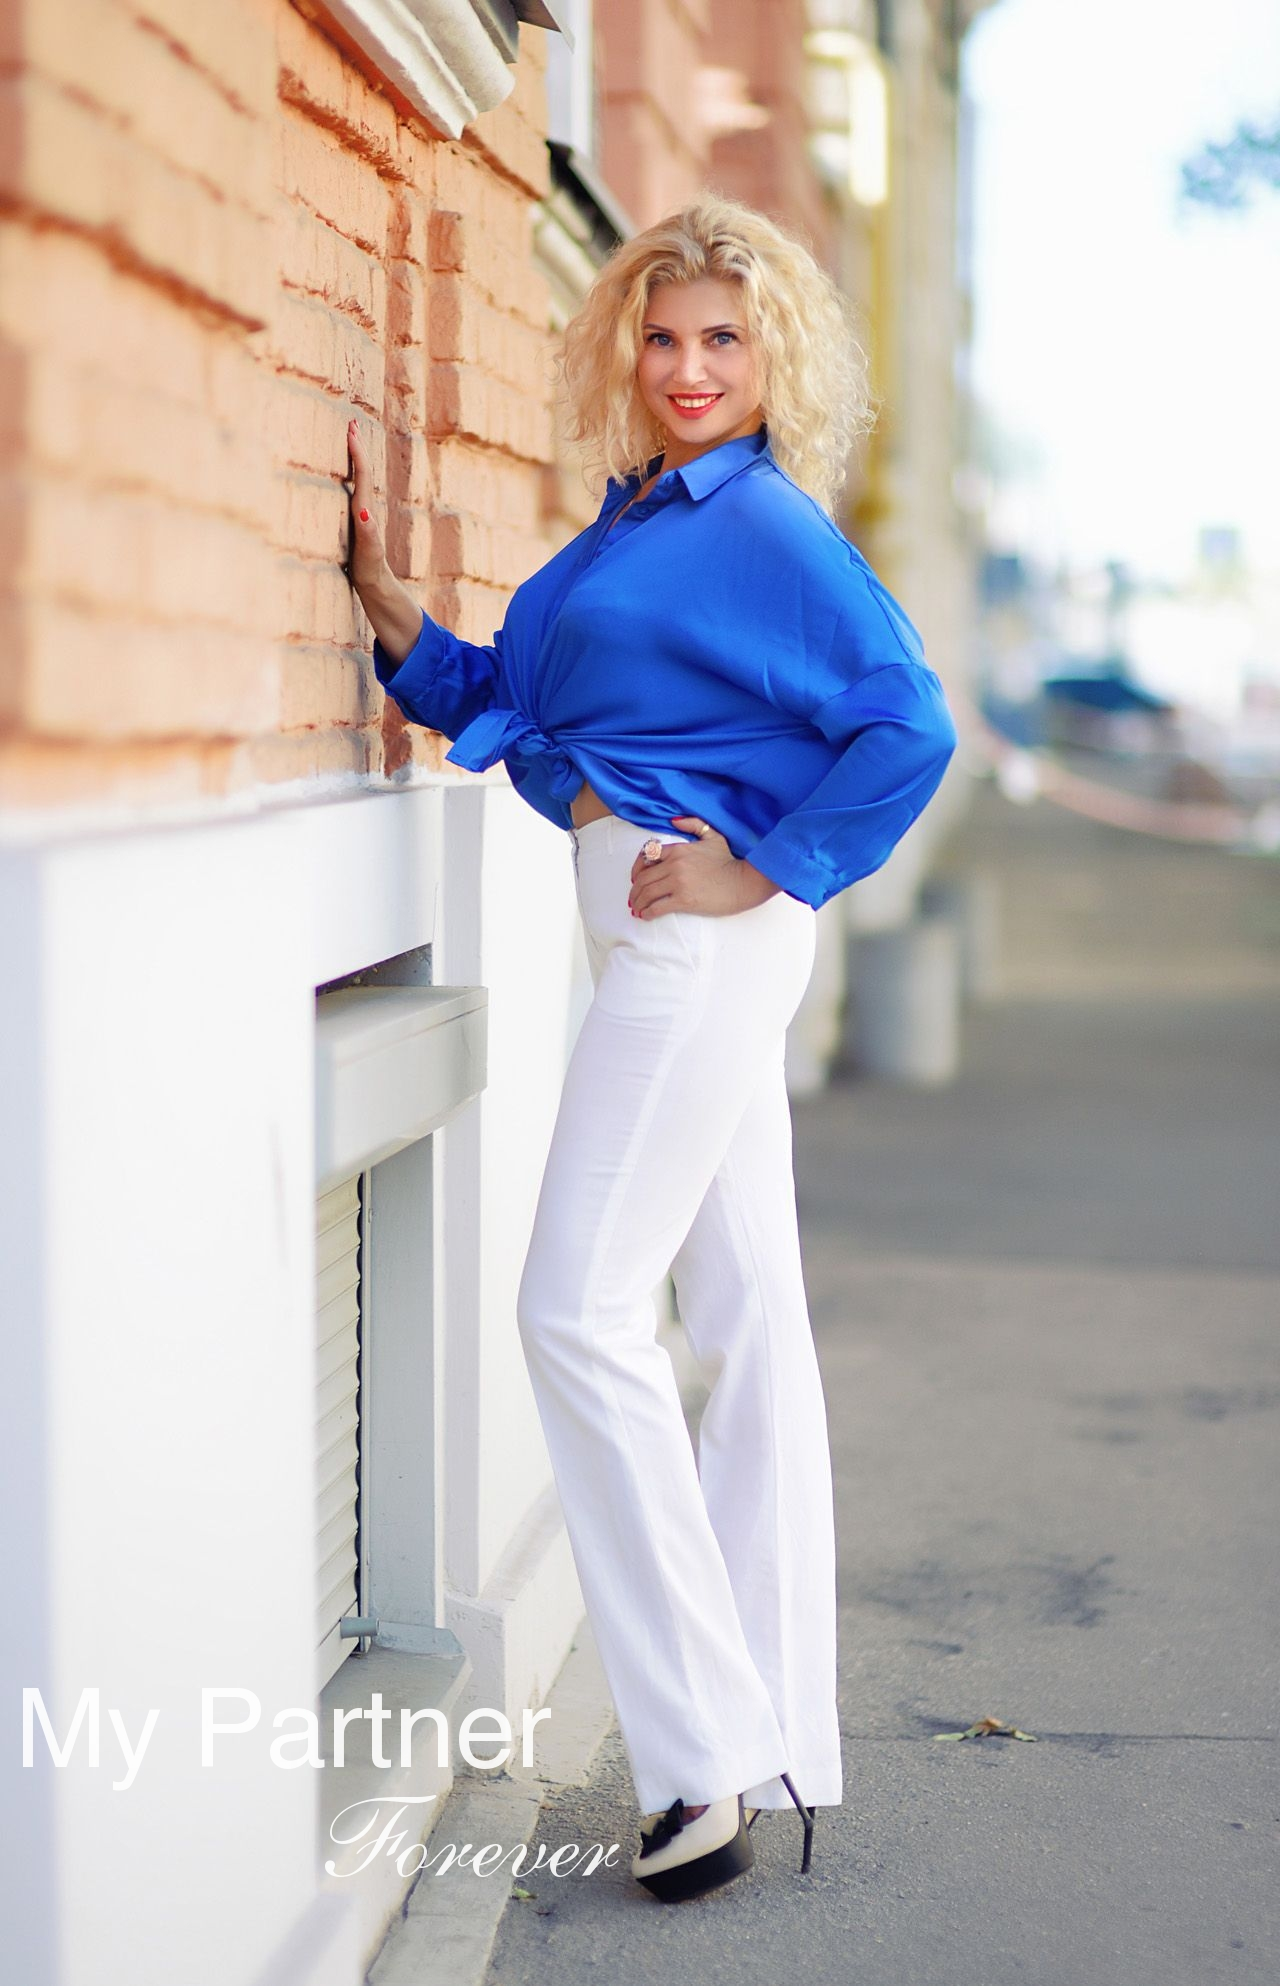 Single Woman from Ukraine - Alina from Kharkov, Ukraine